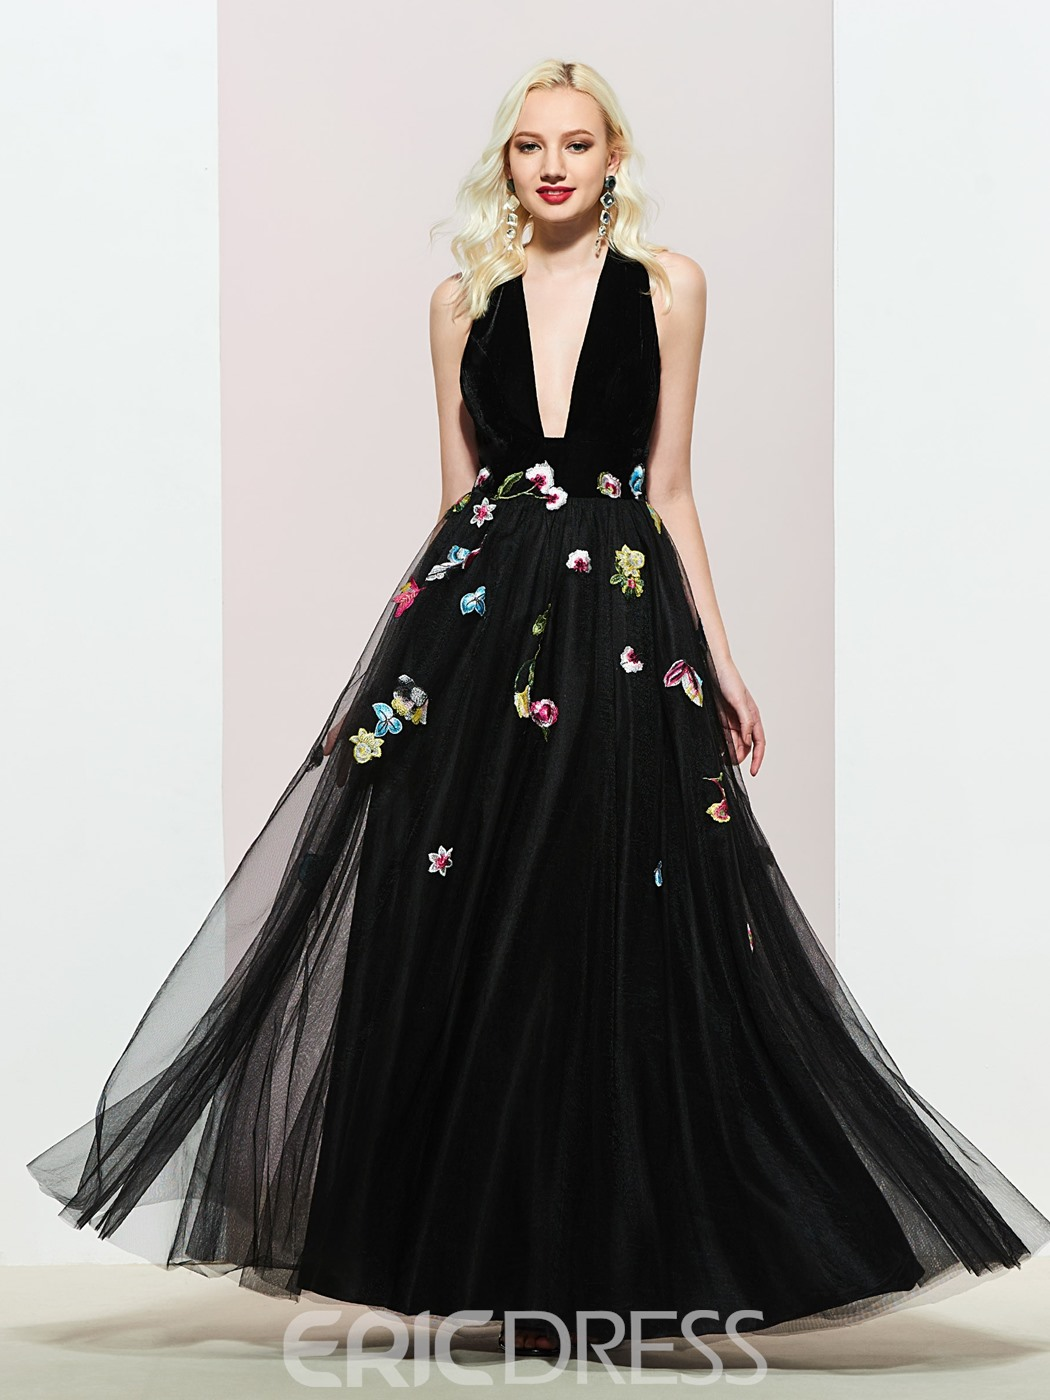 Ericdress A-Line V-Neck Sleeveless Embroidery Evening Dress